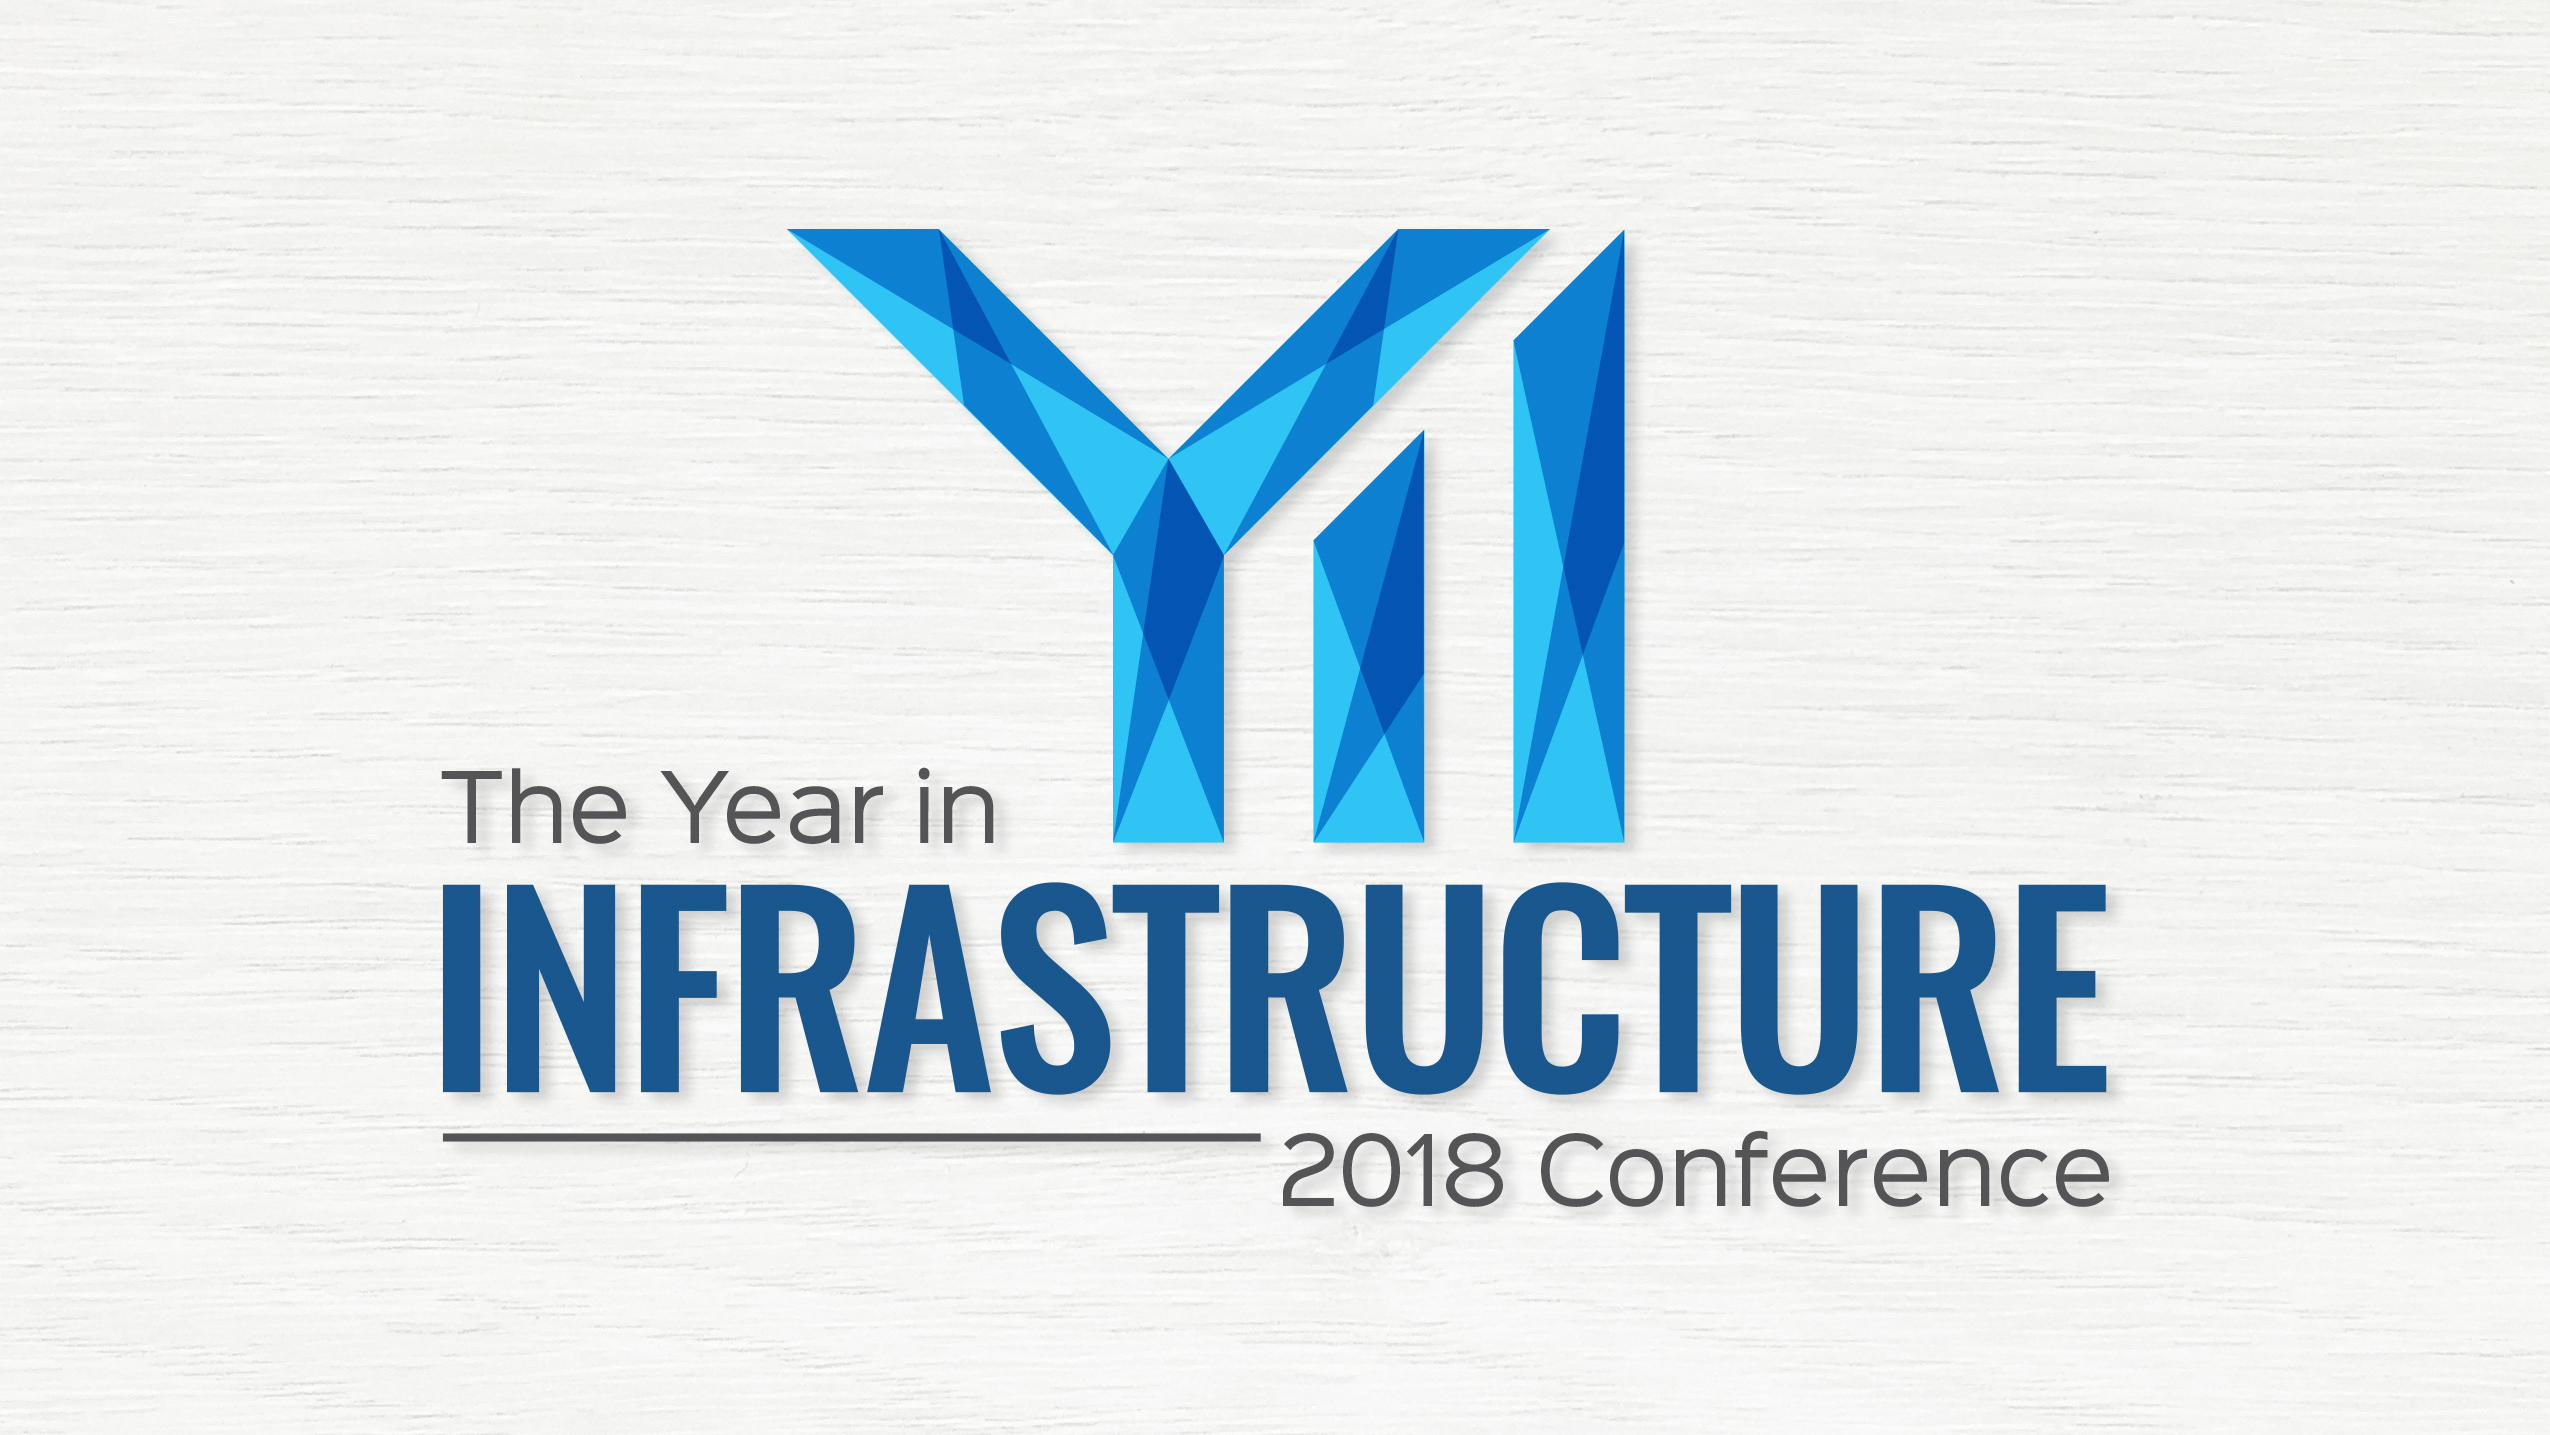 The Year in Infrastructure 2018 Conference Re-brand